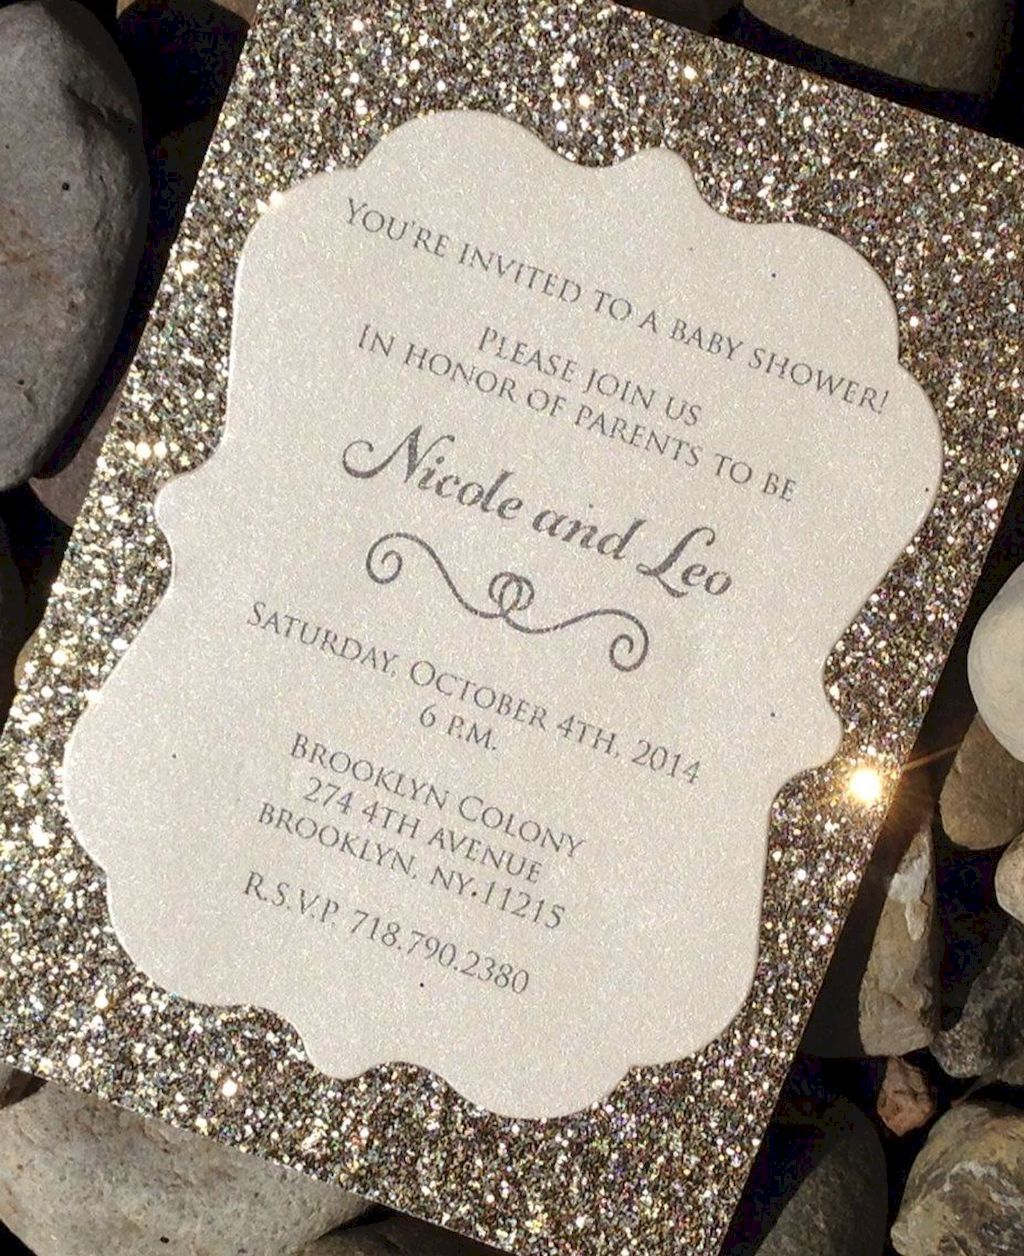 Pin by misha medeiros on sweet 16 einladungskarten hochzeit einladungen hochzeit hochzeitseinladung